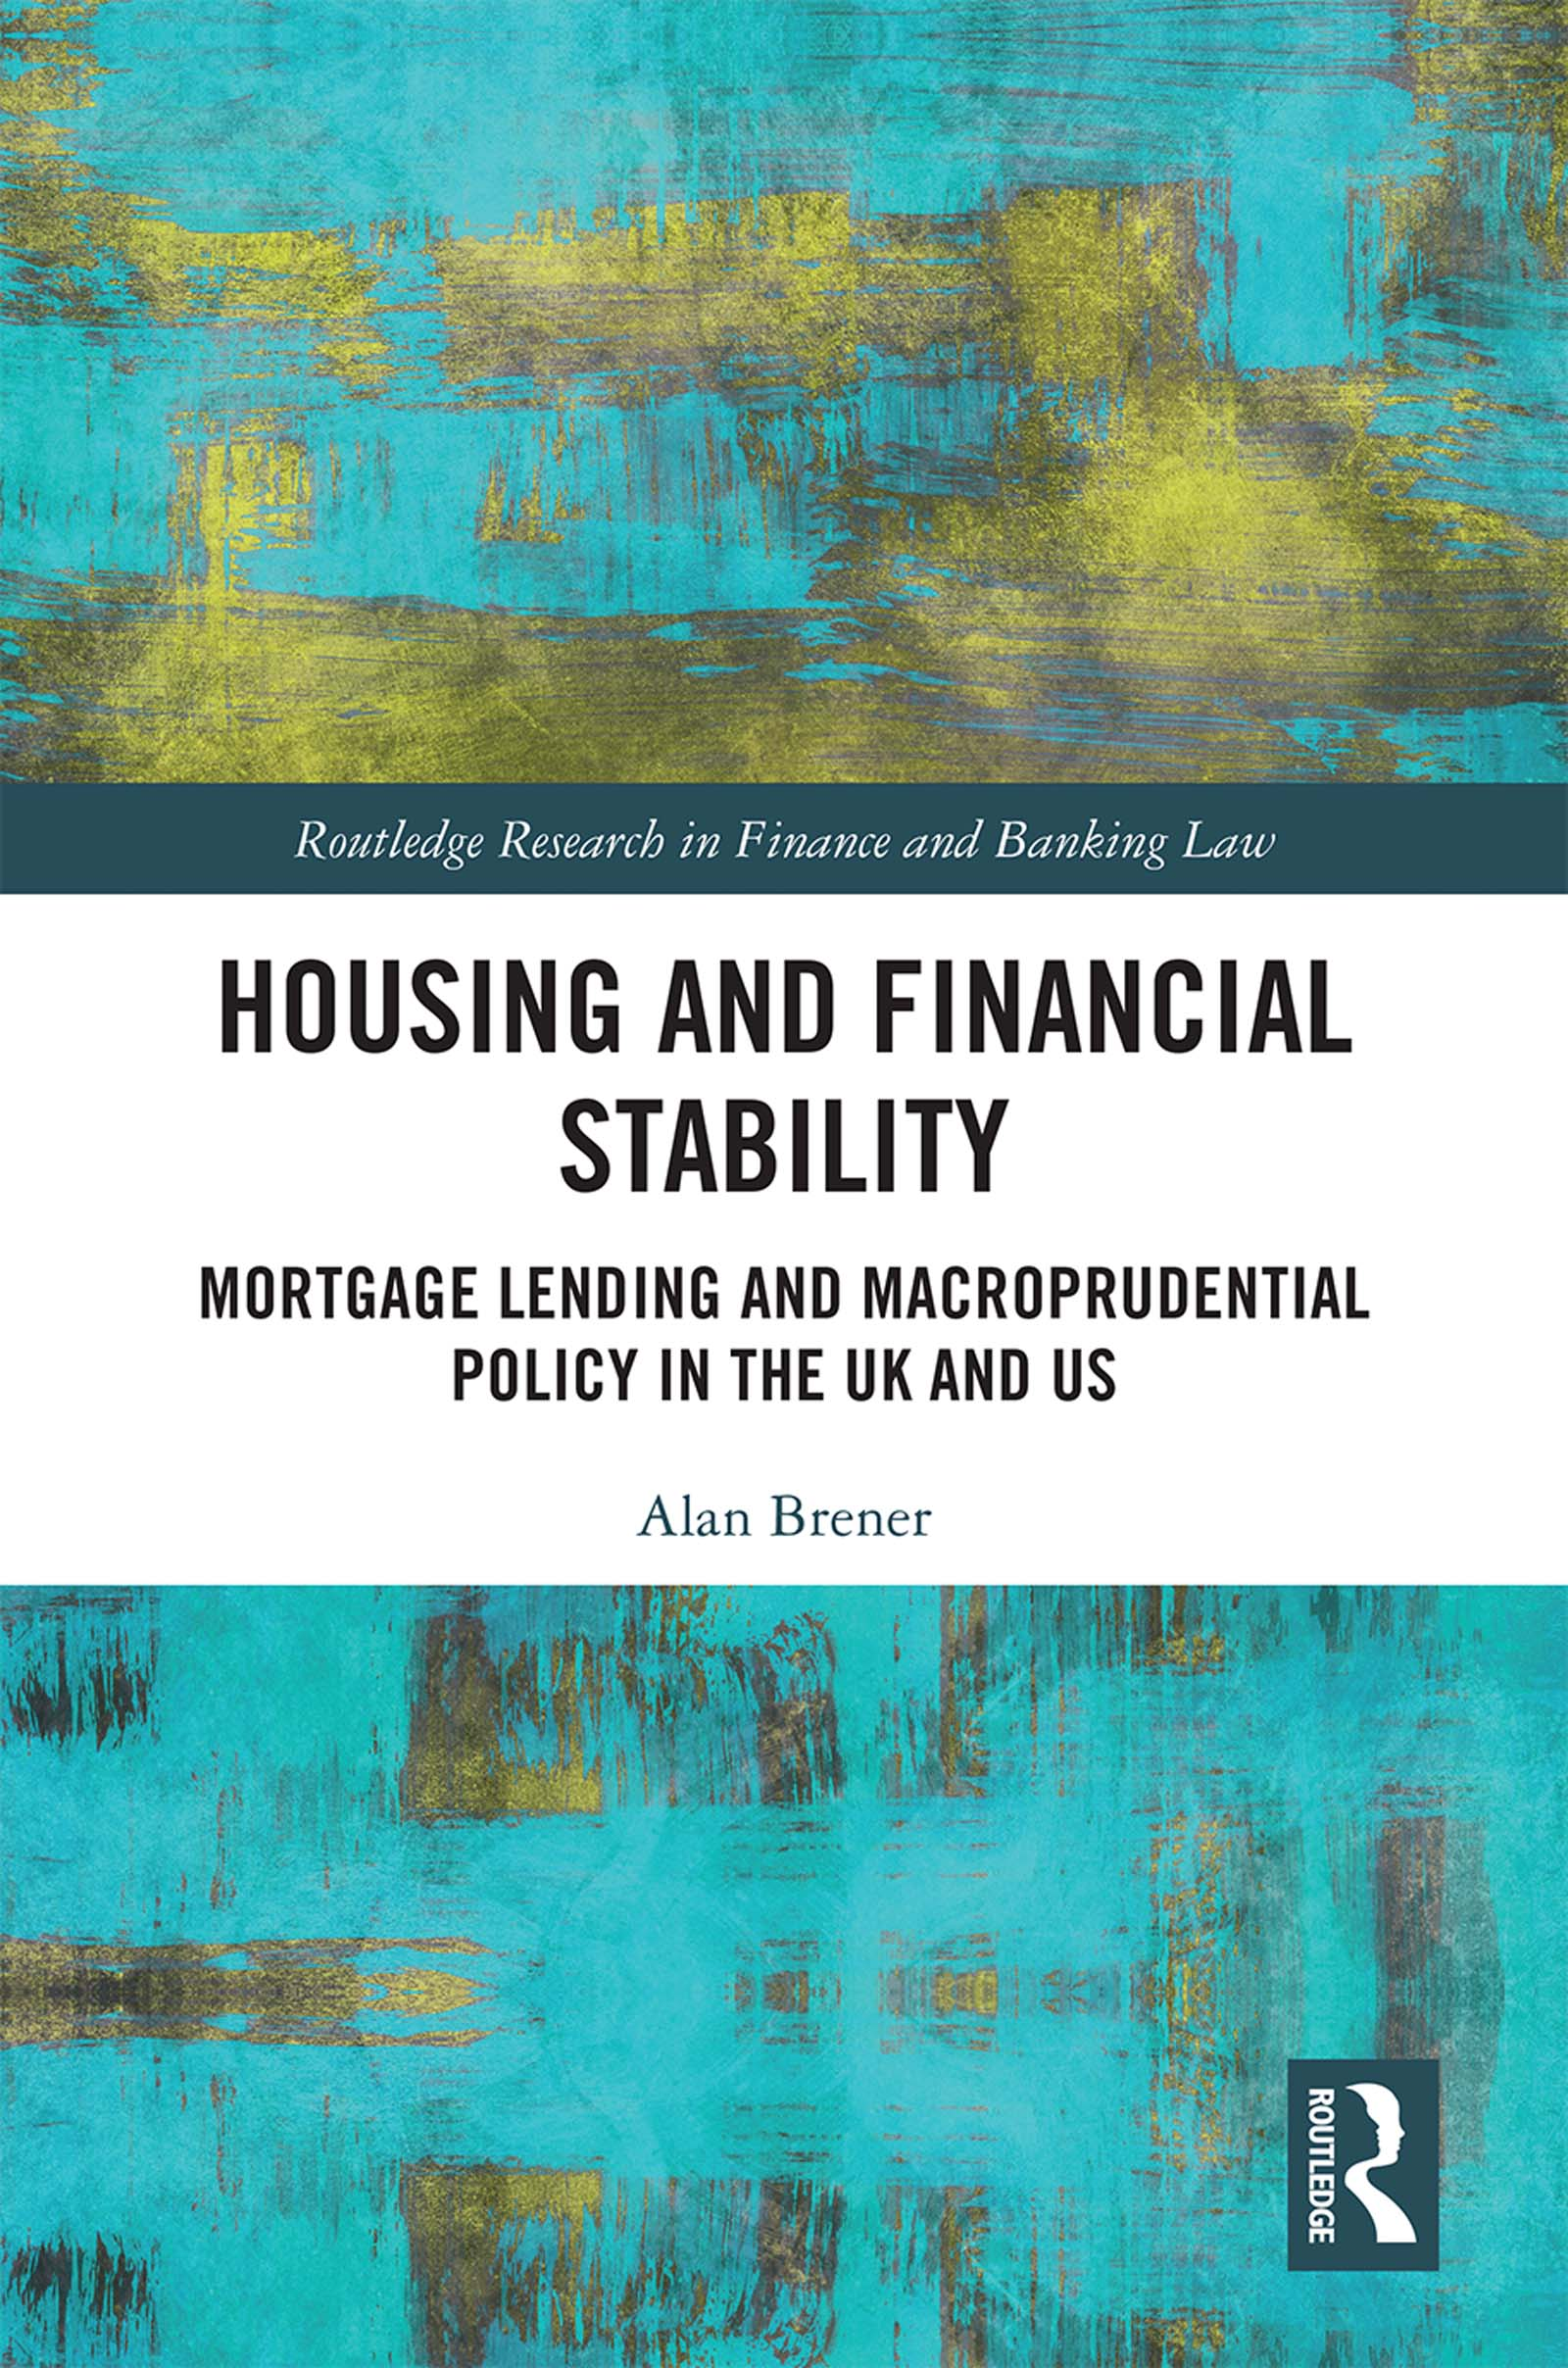 Housing and Financial Stability: Mortgage Lending and Macroprudential Policy in the UK and US book cover